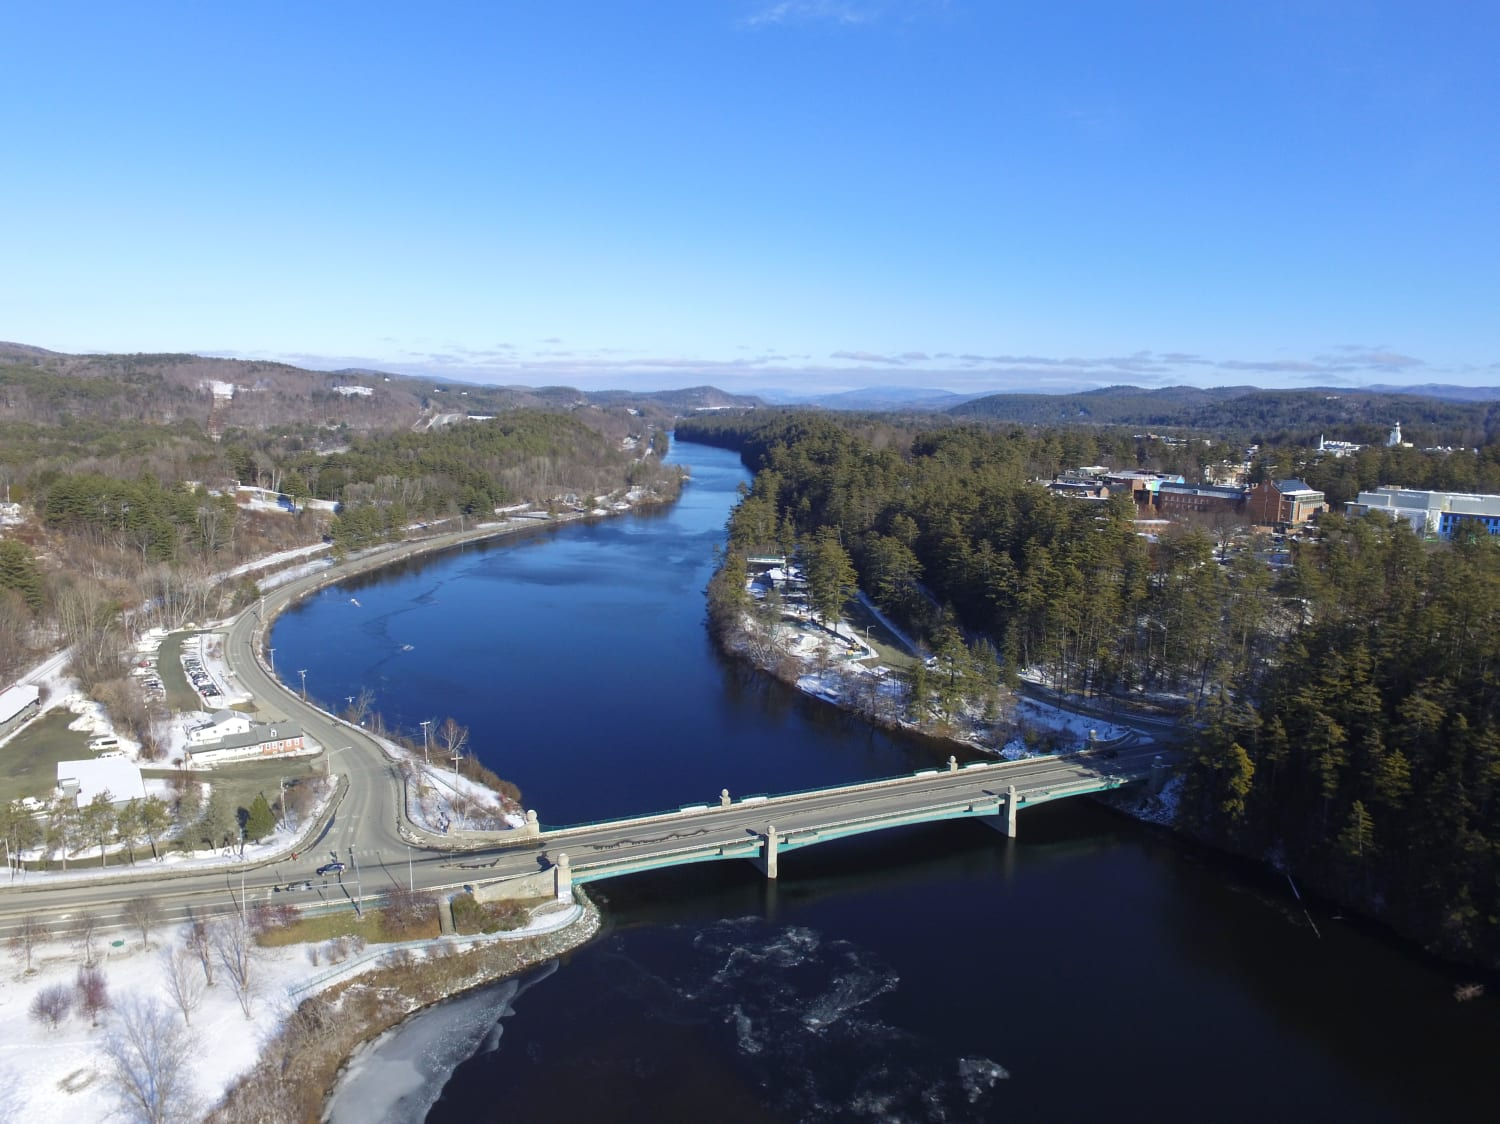 The Ledyard Bridge Connects Norwich VT and Hanover NH. Photo by JK Aerial.